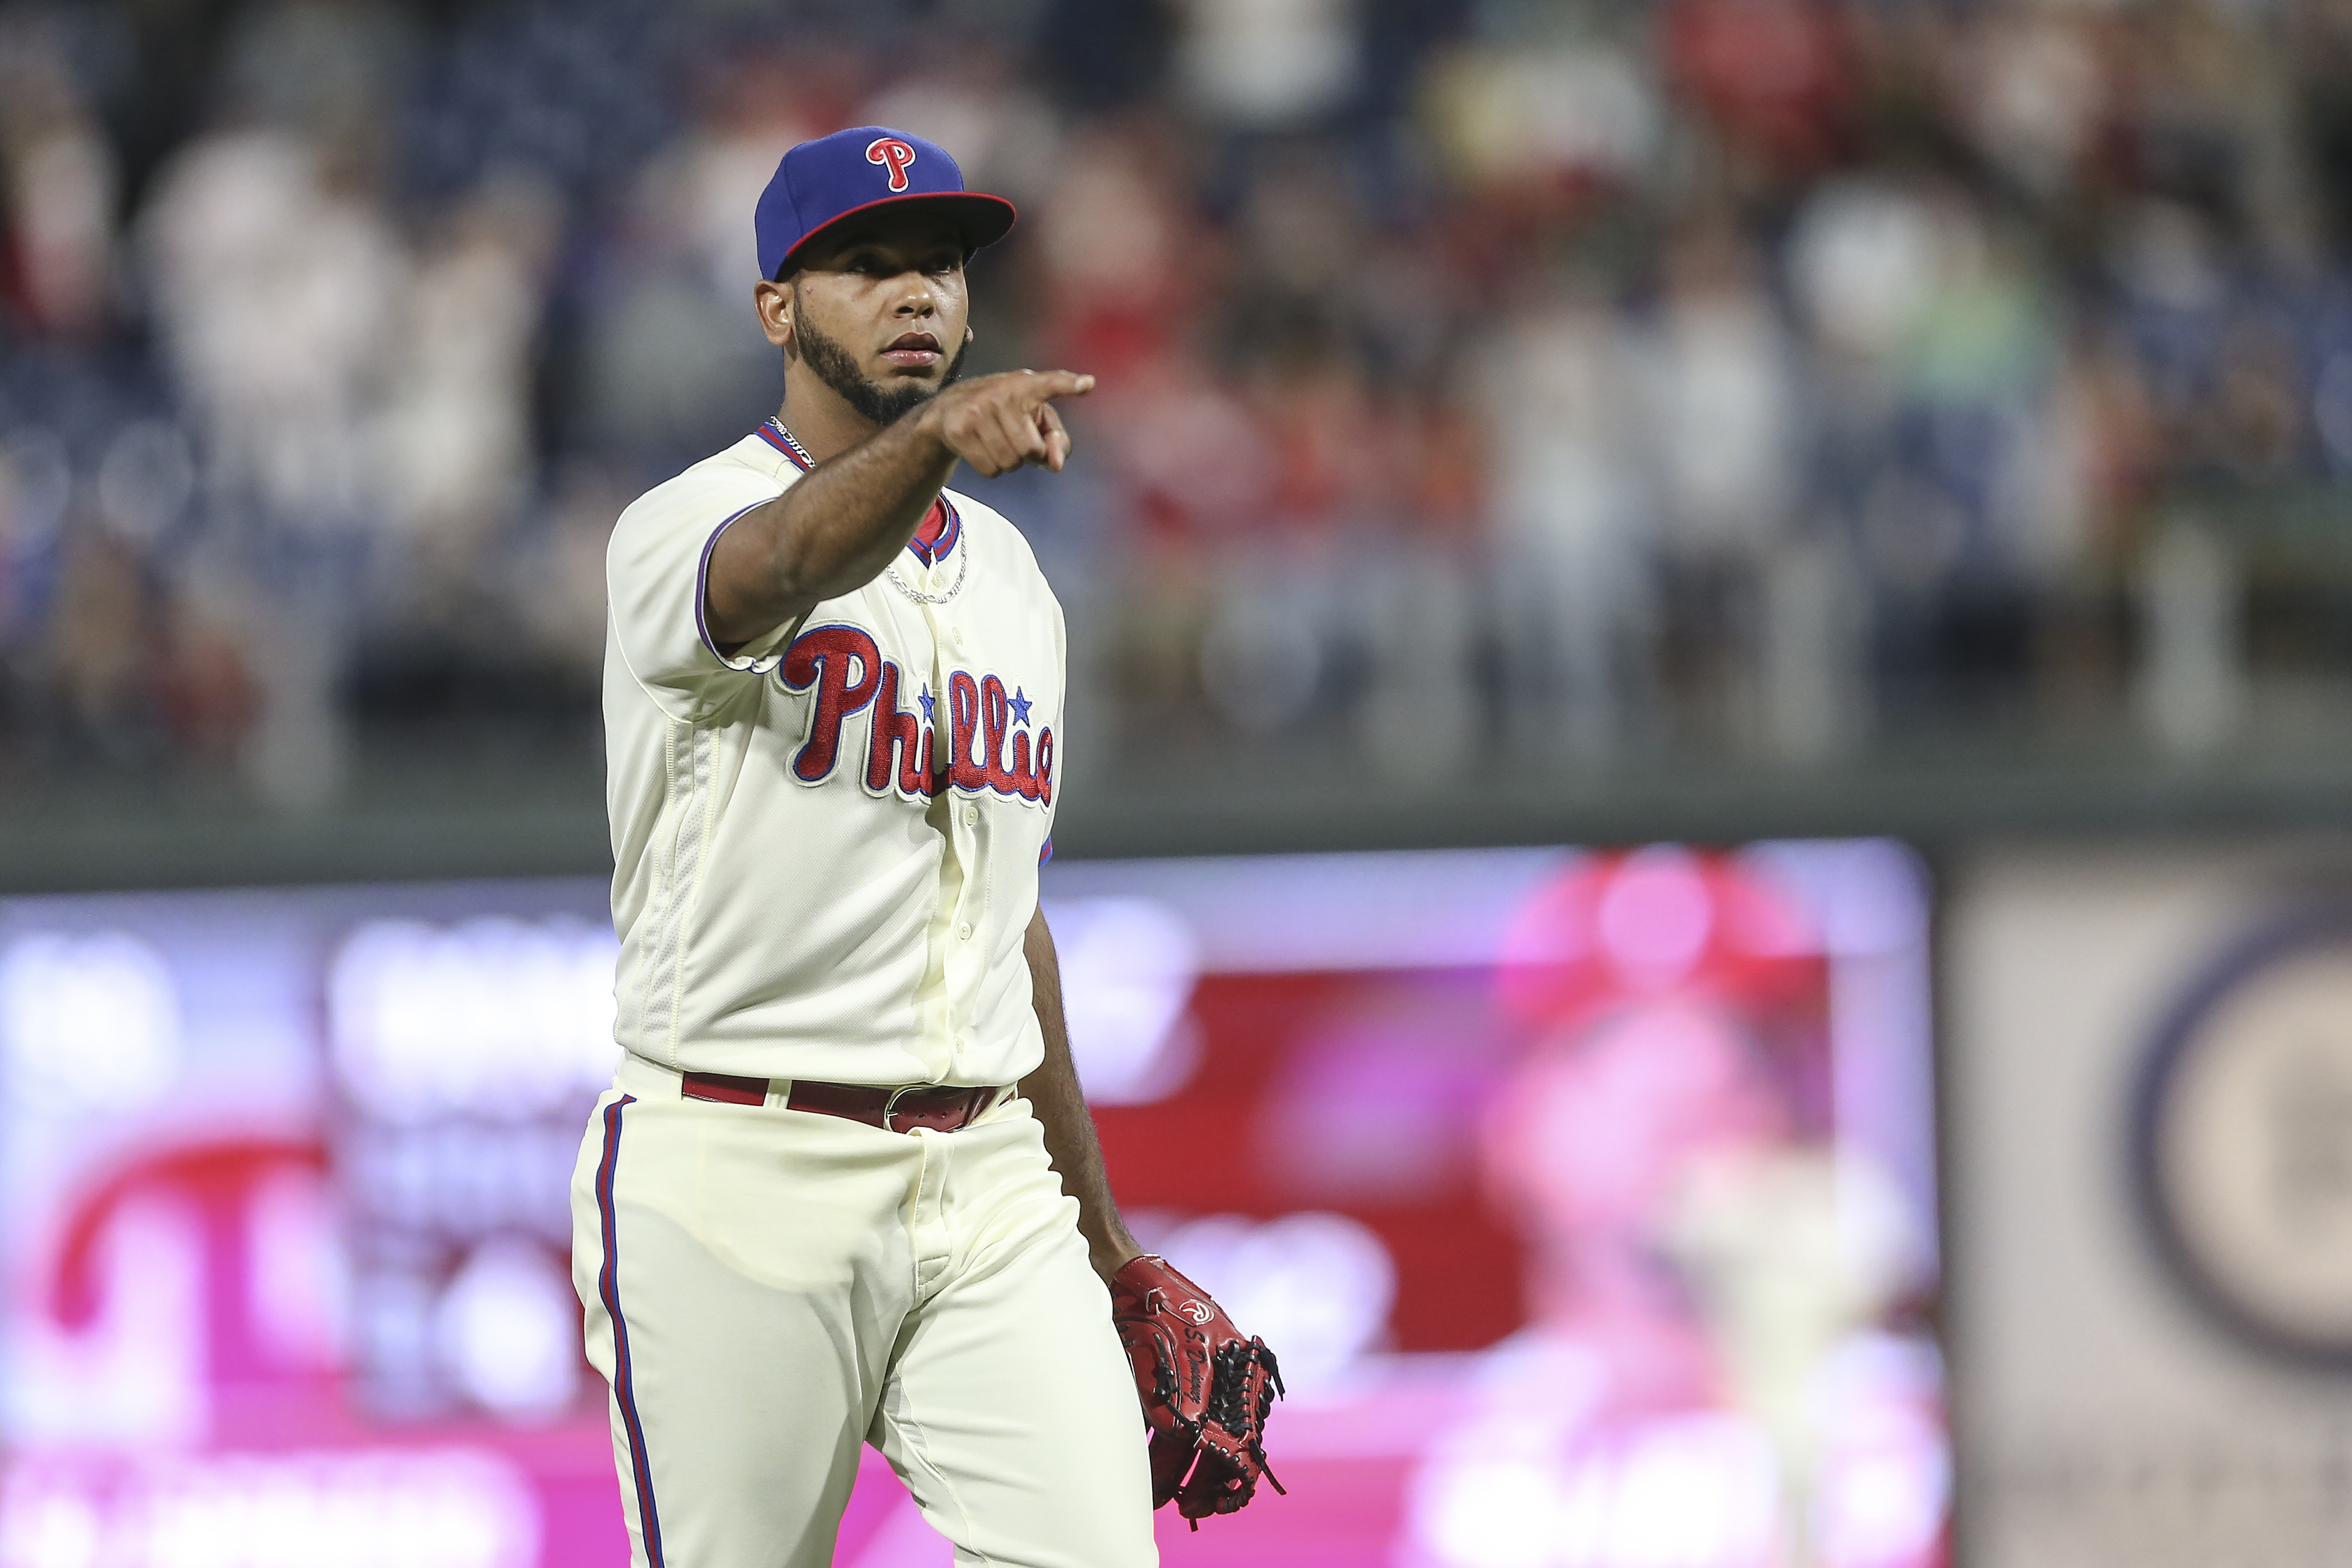 Phillies´ closer Seranthony Dominguez points after striking out Rockies´ Nolan Arenado to end the game at Citizens Bank Park in Philadelphia, Tuesday, June 12, 2018. Phillies beat the Rockies 5-4.